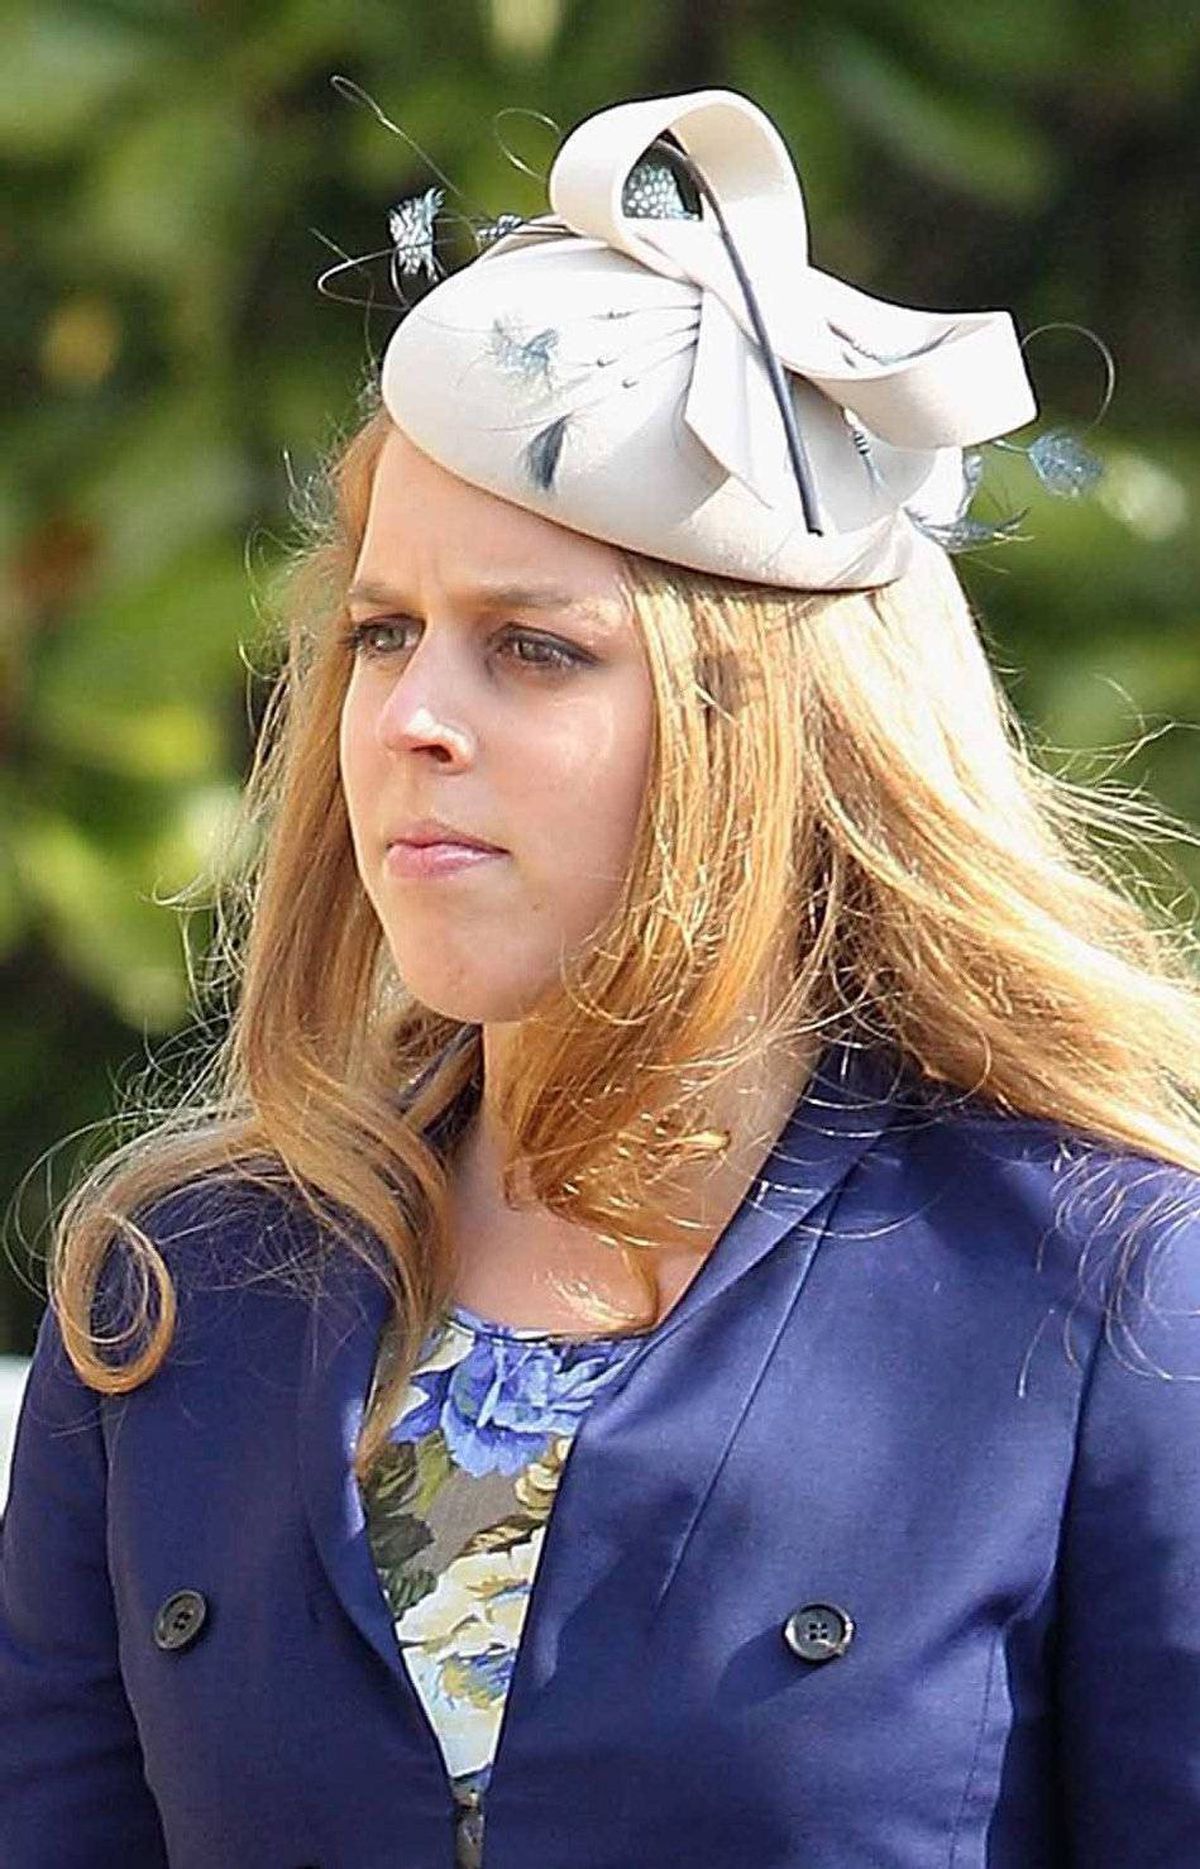 Britain's Princess Beatrice arrives for a service at St George's Chapel in Windsor, southern England March 30, 2012.